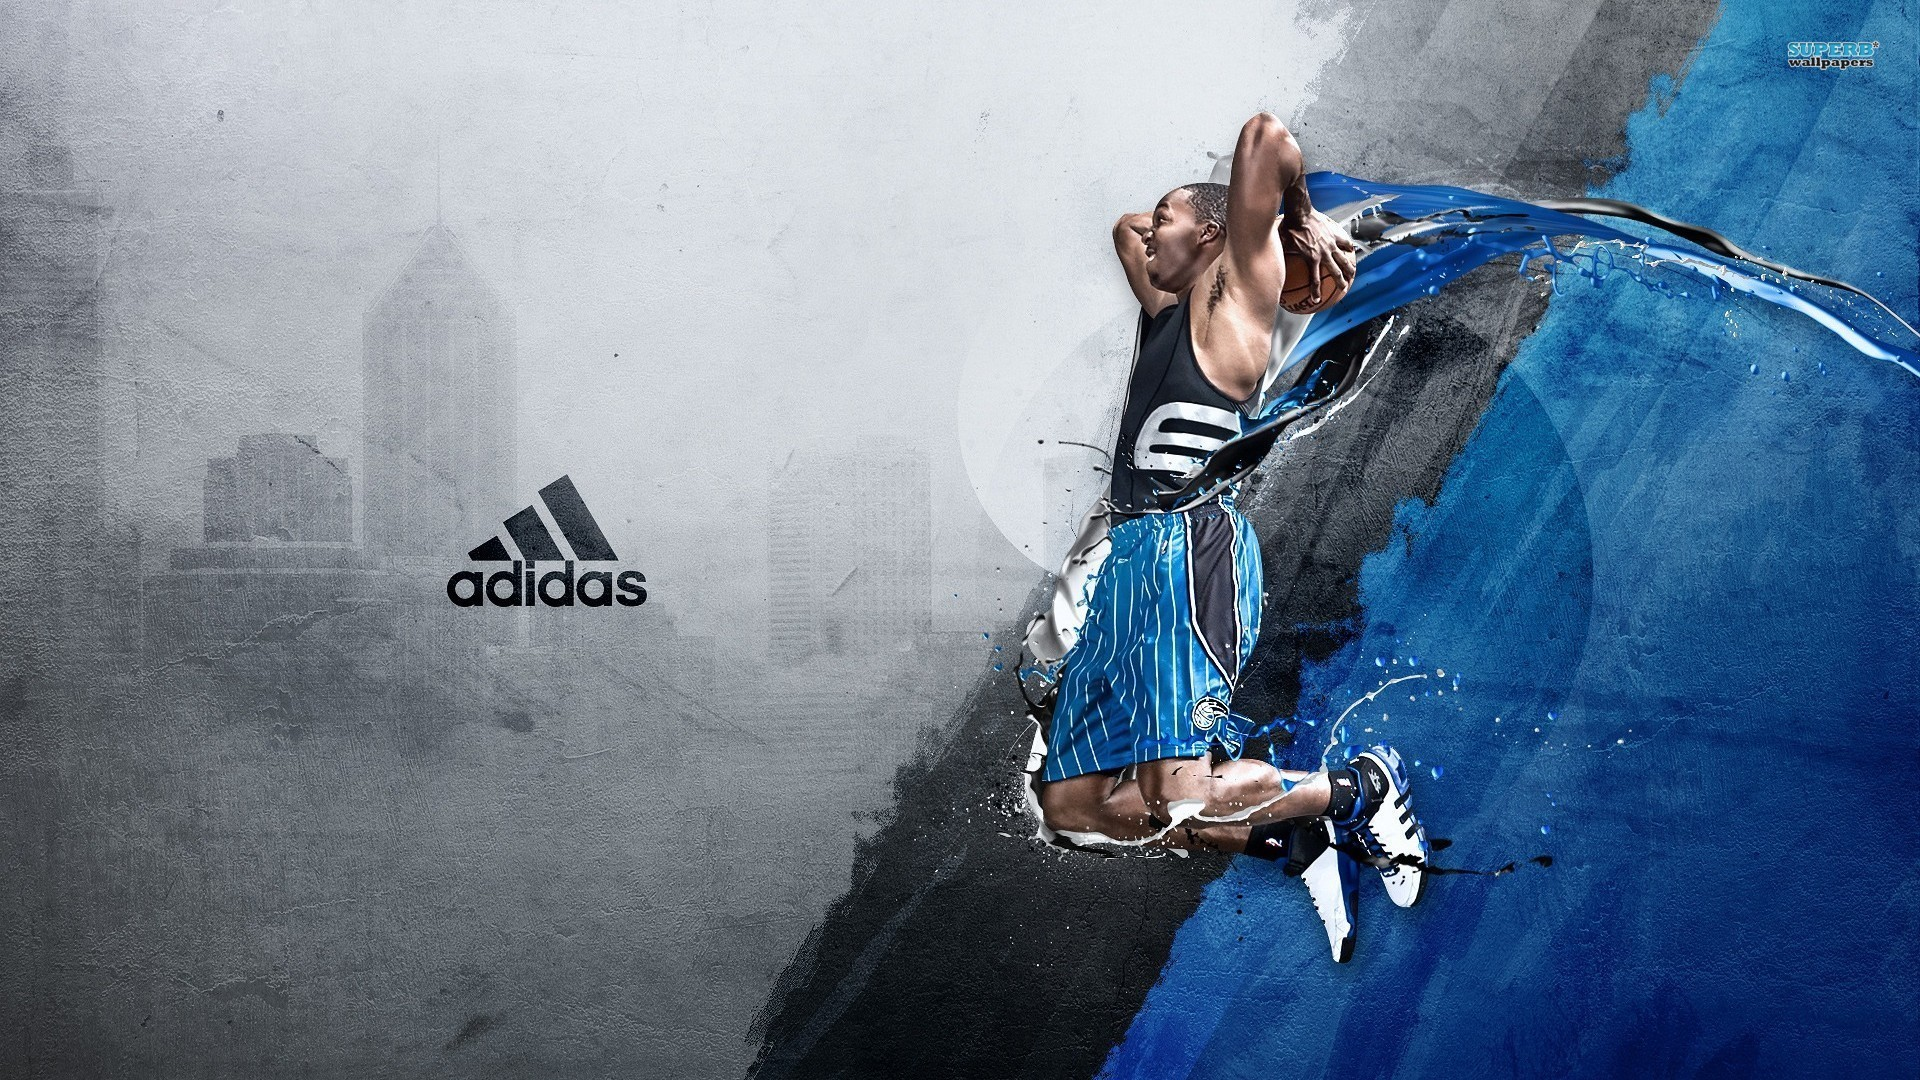 1920x1080 Dwight Howard Desktop Wallpaper - In Orlando Magic Jersey, Laying Up to Dunk